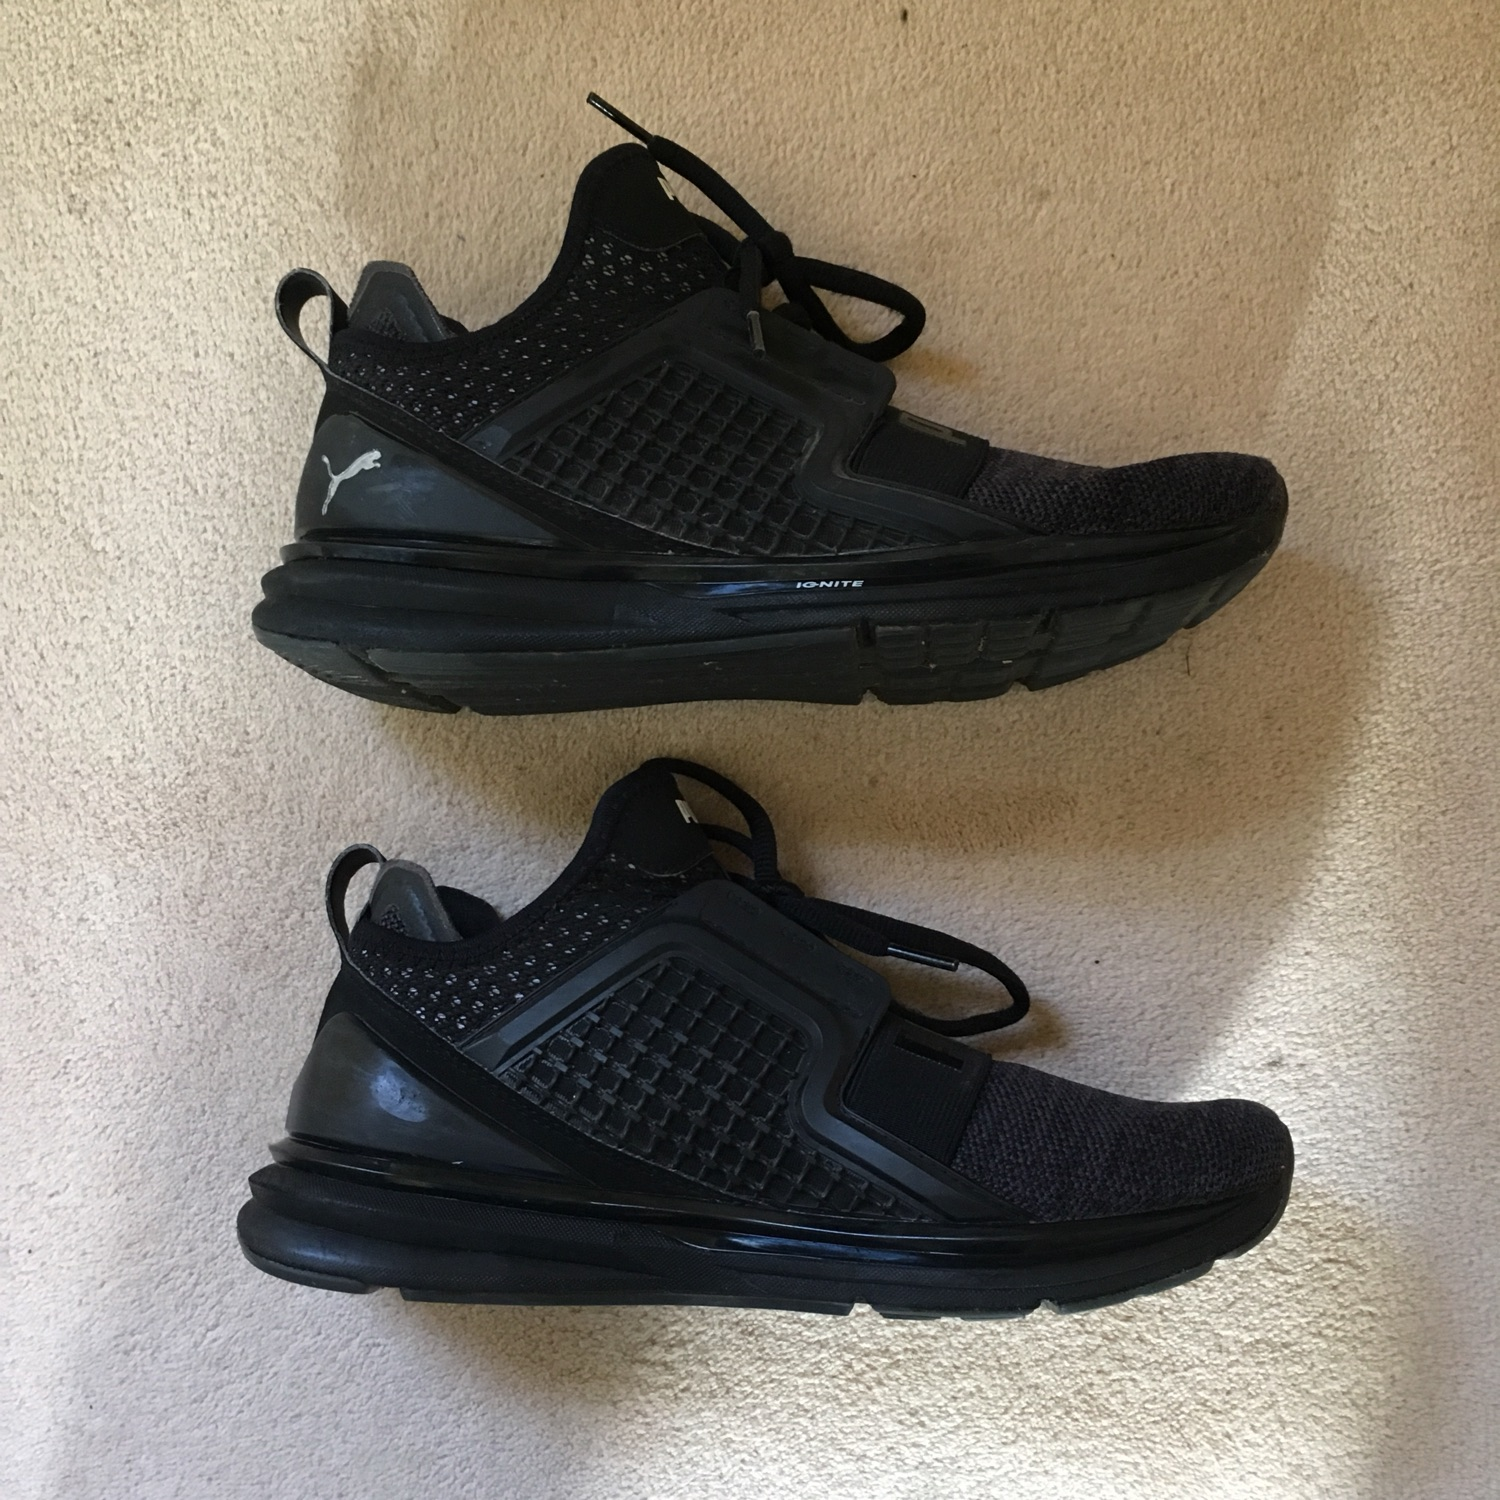 the latest c8ab9 bdfd9 Puma Limitless Weave Trainers Black/Grey/White